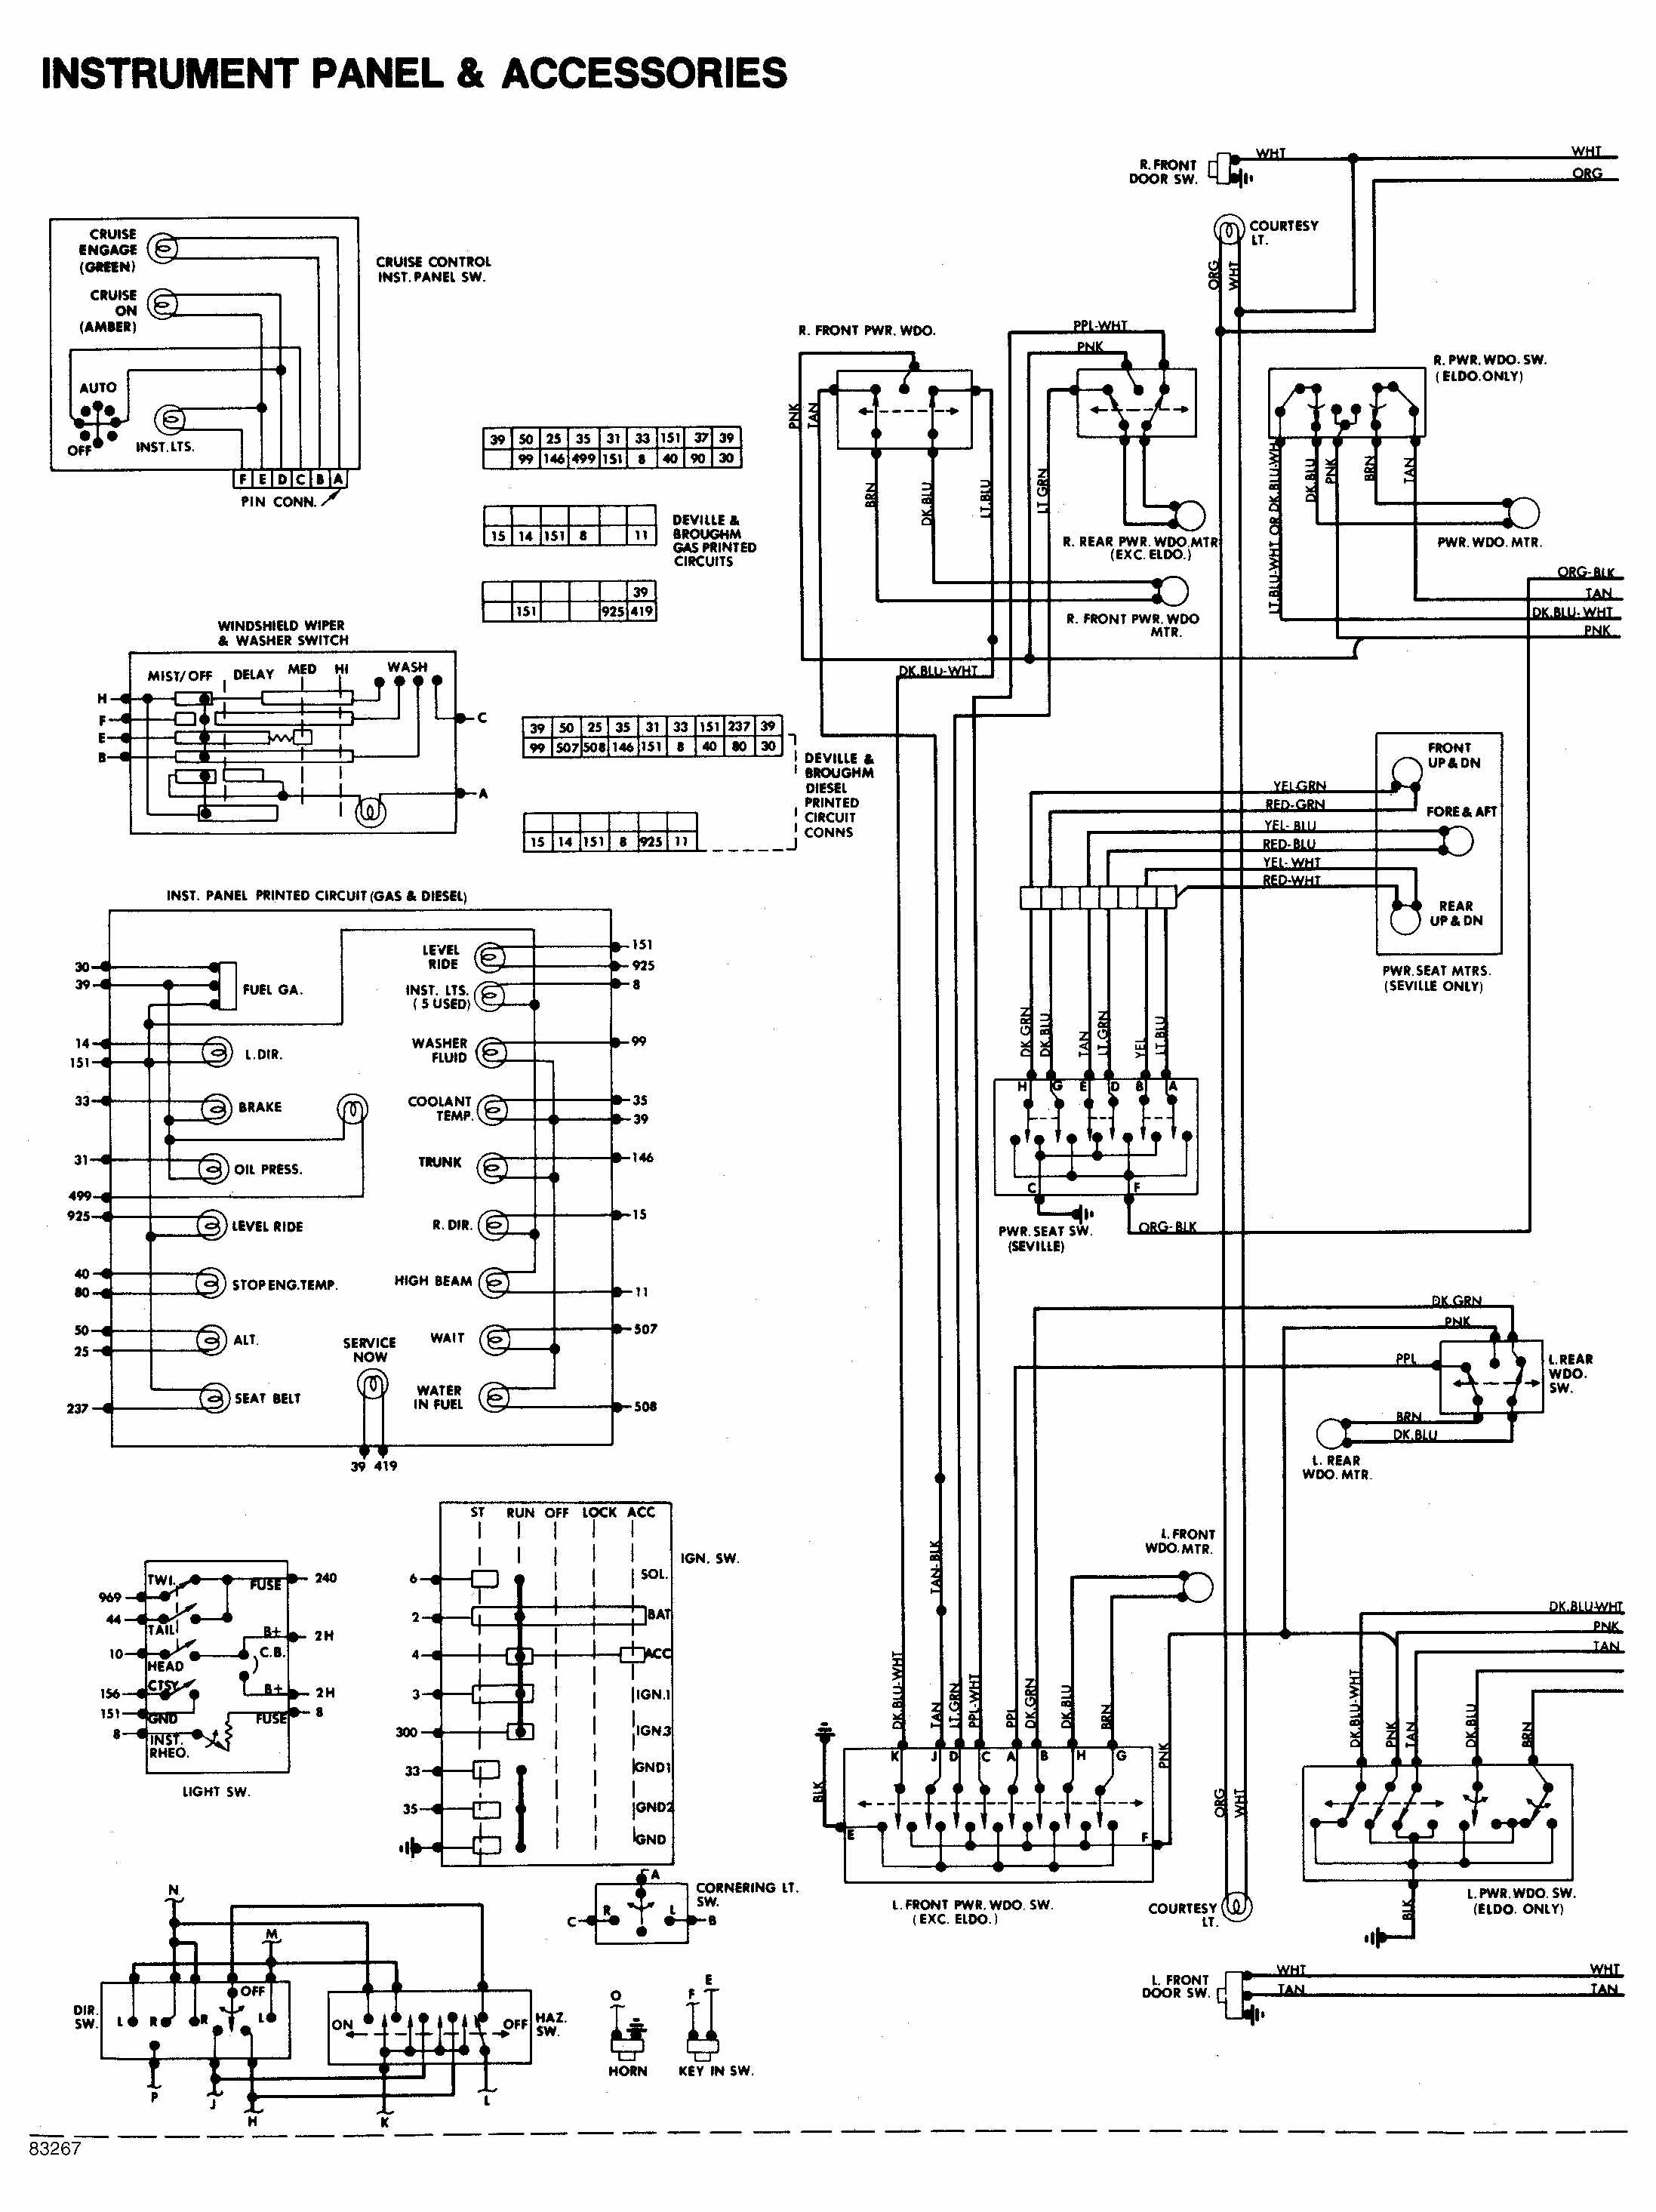 instrument panel and accessories wiring diagram of 1984 cadillac deville 99 eldorado abs wiring diagram 99 c1500 brake wiring diagram sterling lt9500 wiring diagrams at eliteediting.co